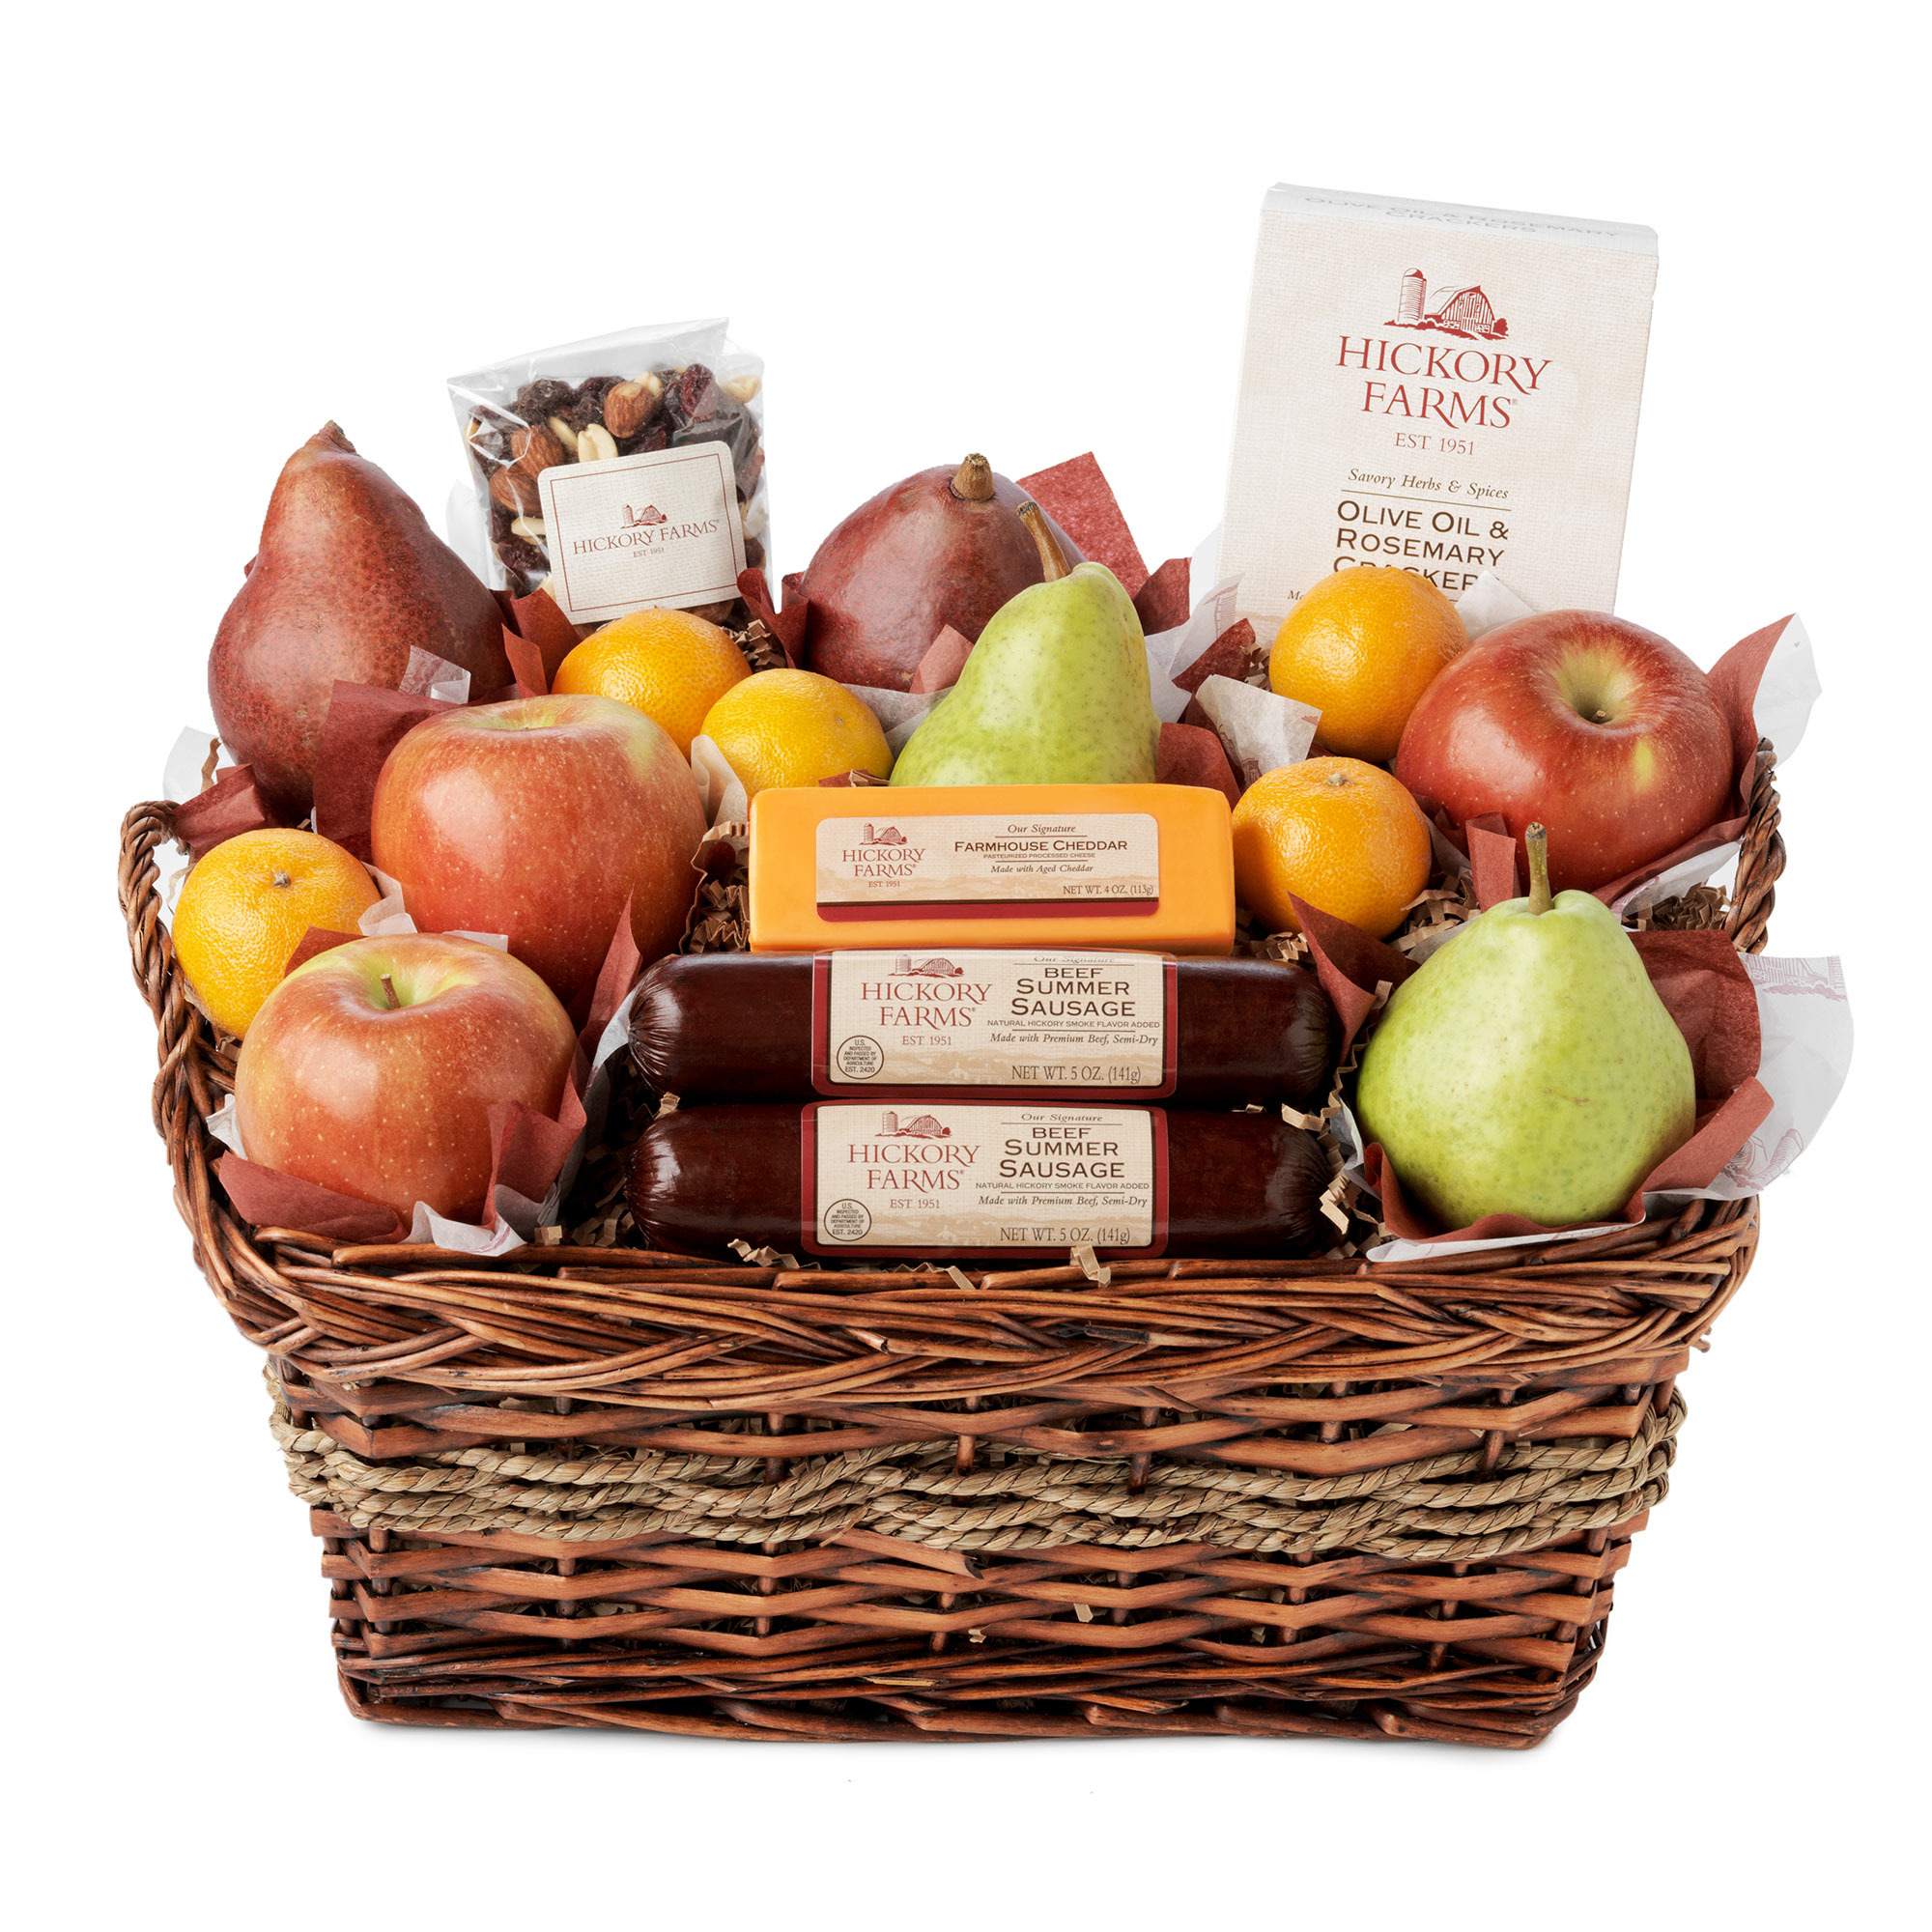 Orchards bounty gift basket gift purchase our wine gift baskets hickory farms orchards bounty gift basket negle Image collections